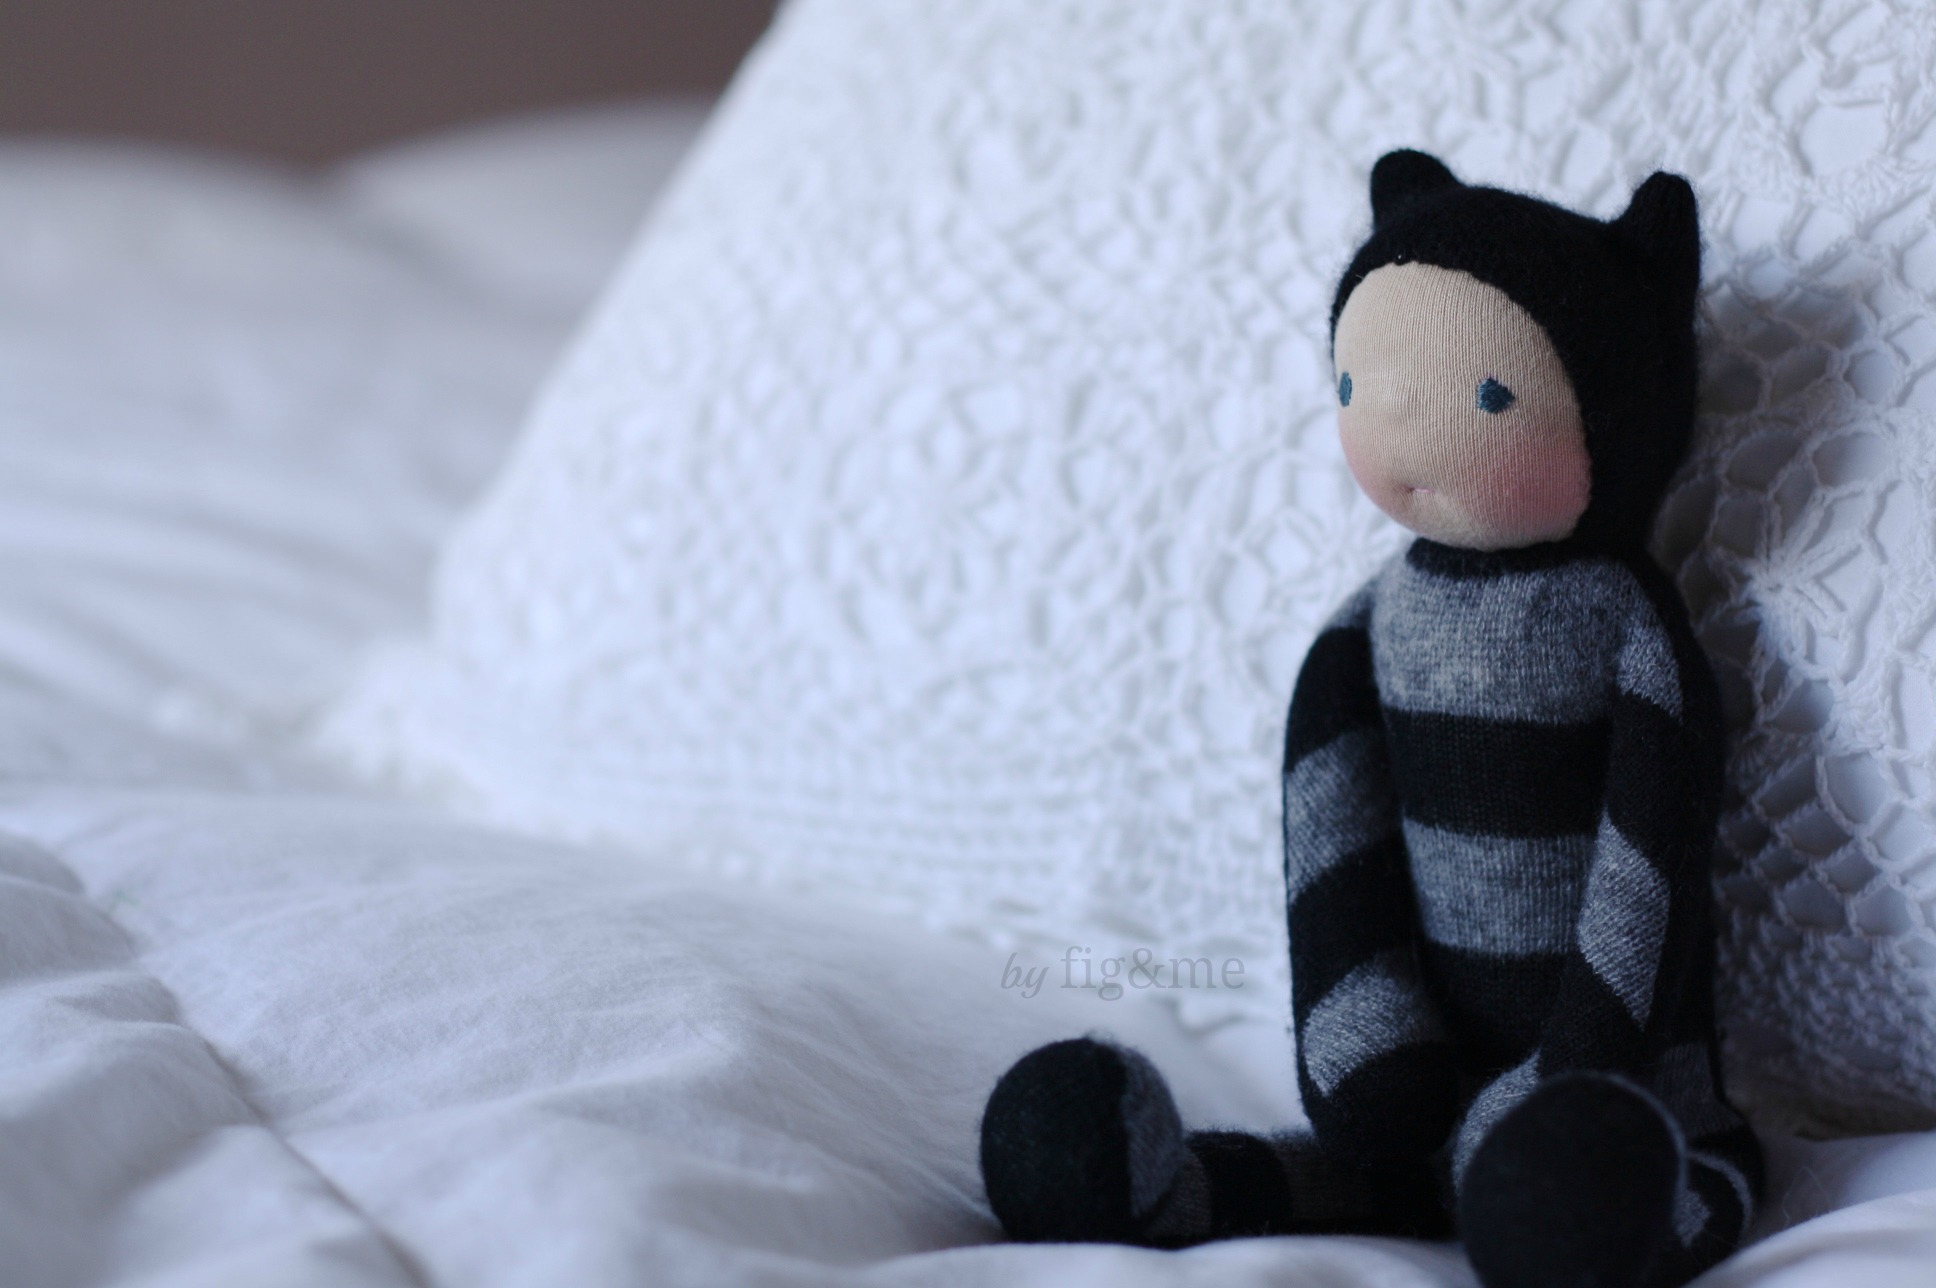 A wee mischievous kitten made with cashmere, by Fig and Me.